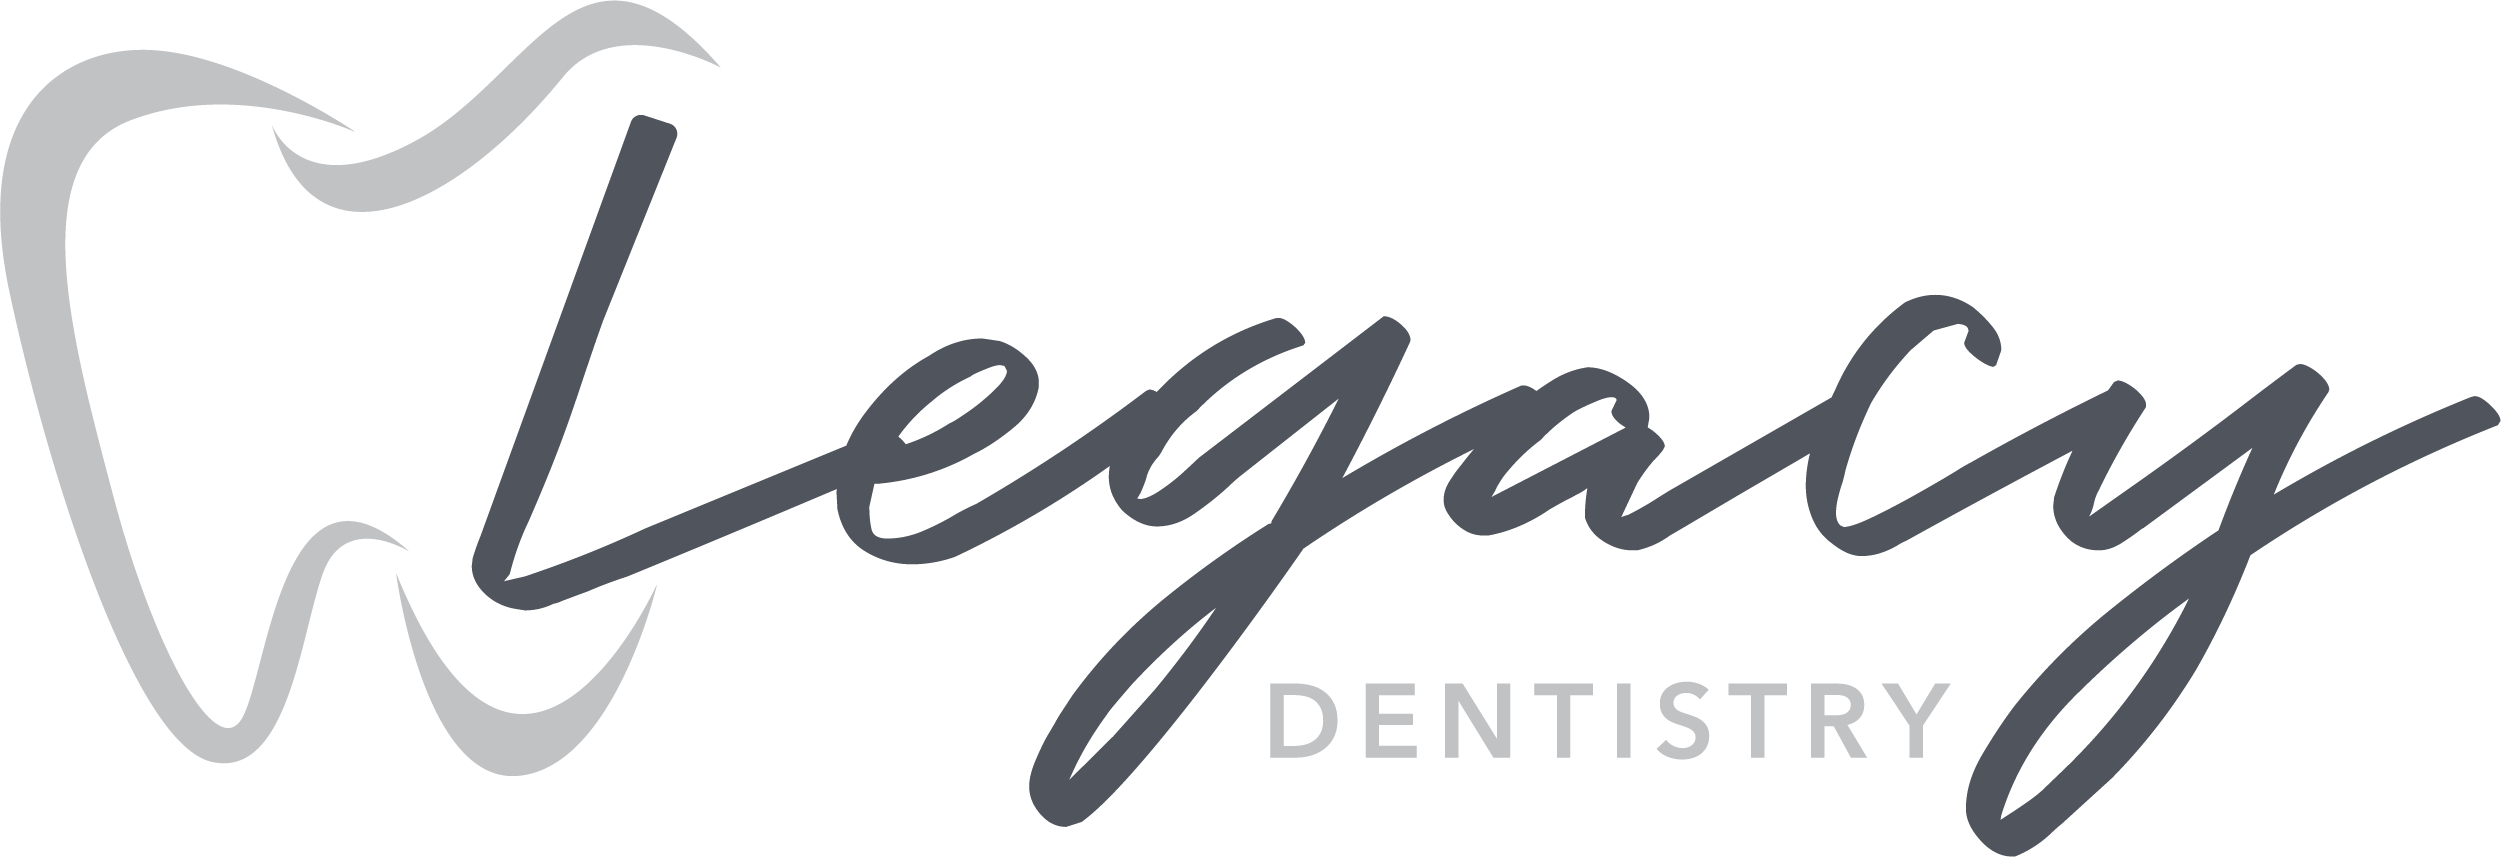 Be apart of the history of a highly respected dental practice !!!